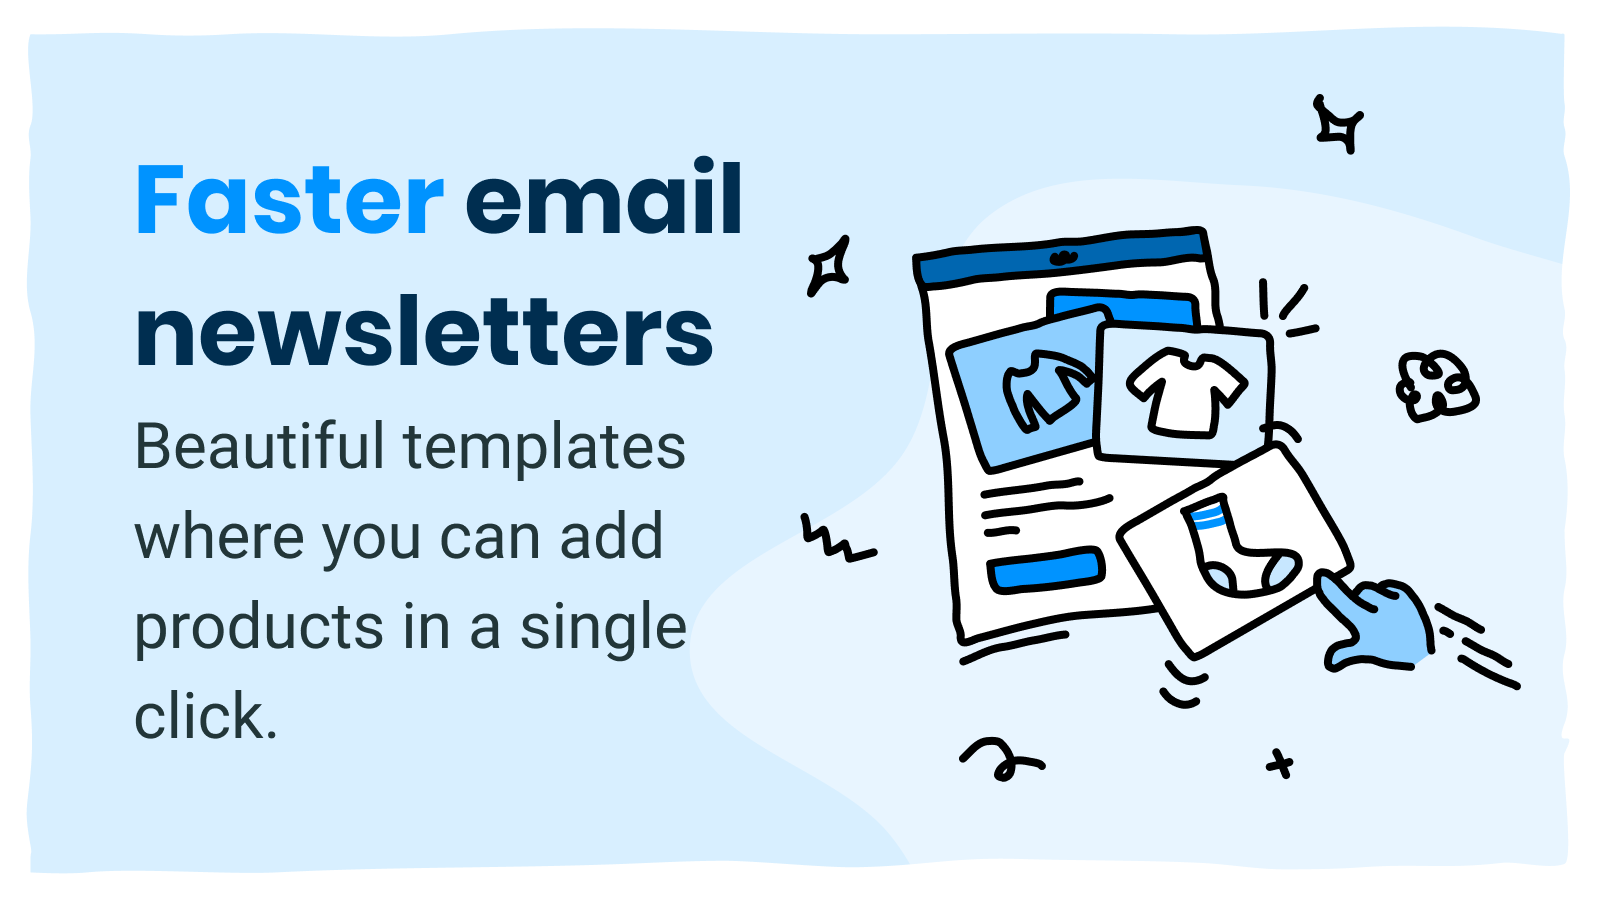 SmartrMail Shopify Email Newsletter Composer mail